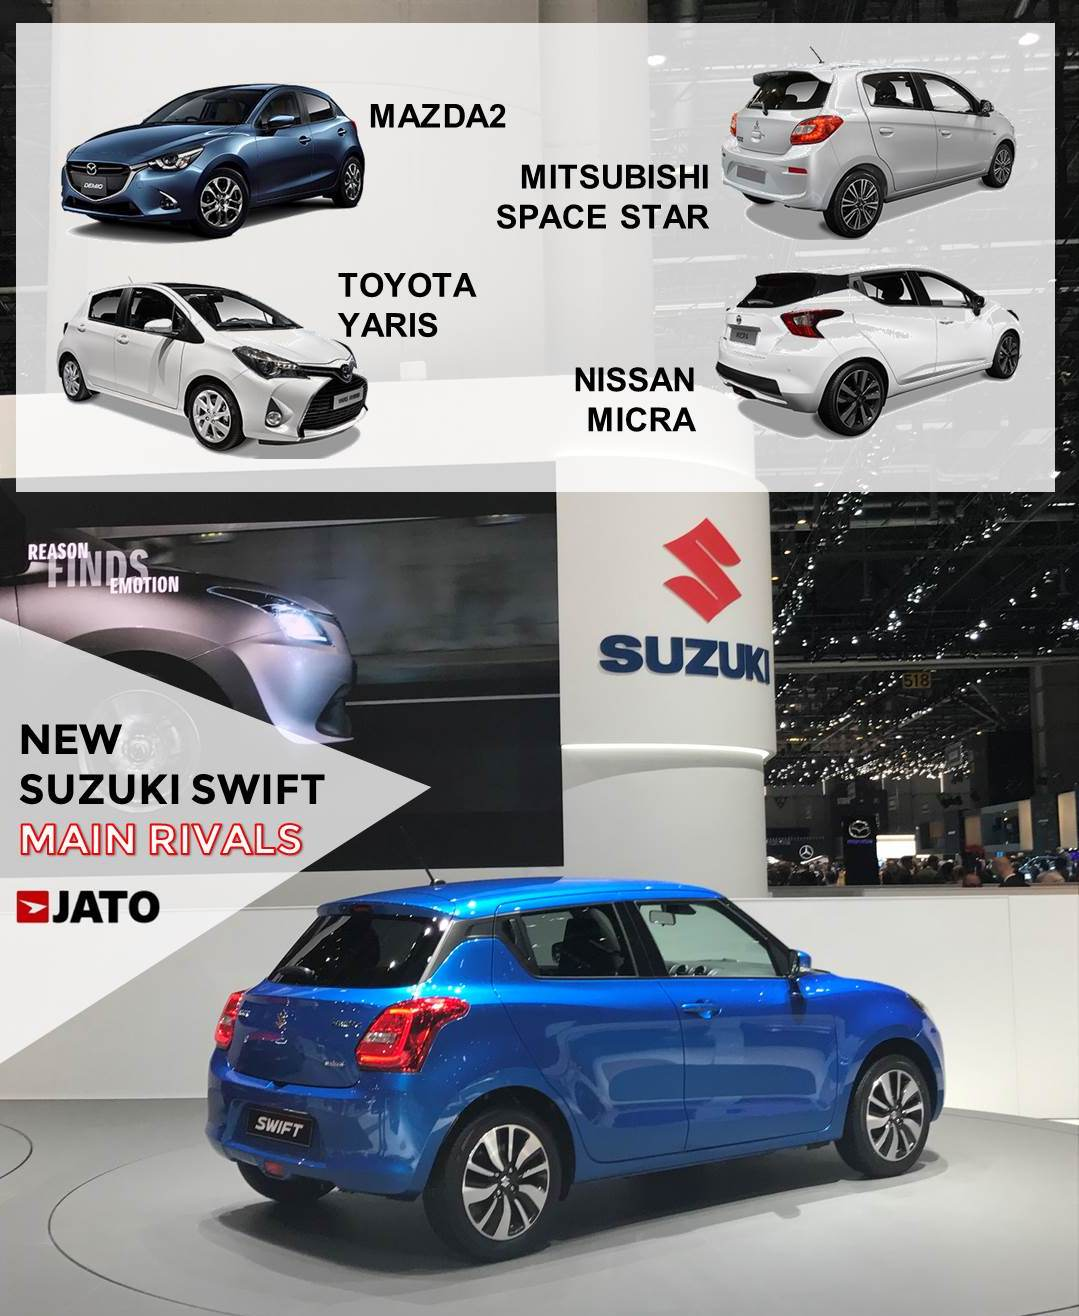 The new generation becomes more Japanese in terms of design. It will target young buyers leaving the rest of the segment to the Baleno.